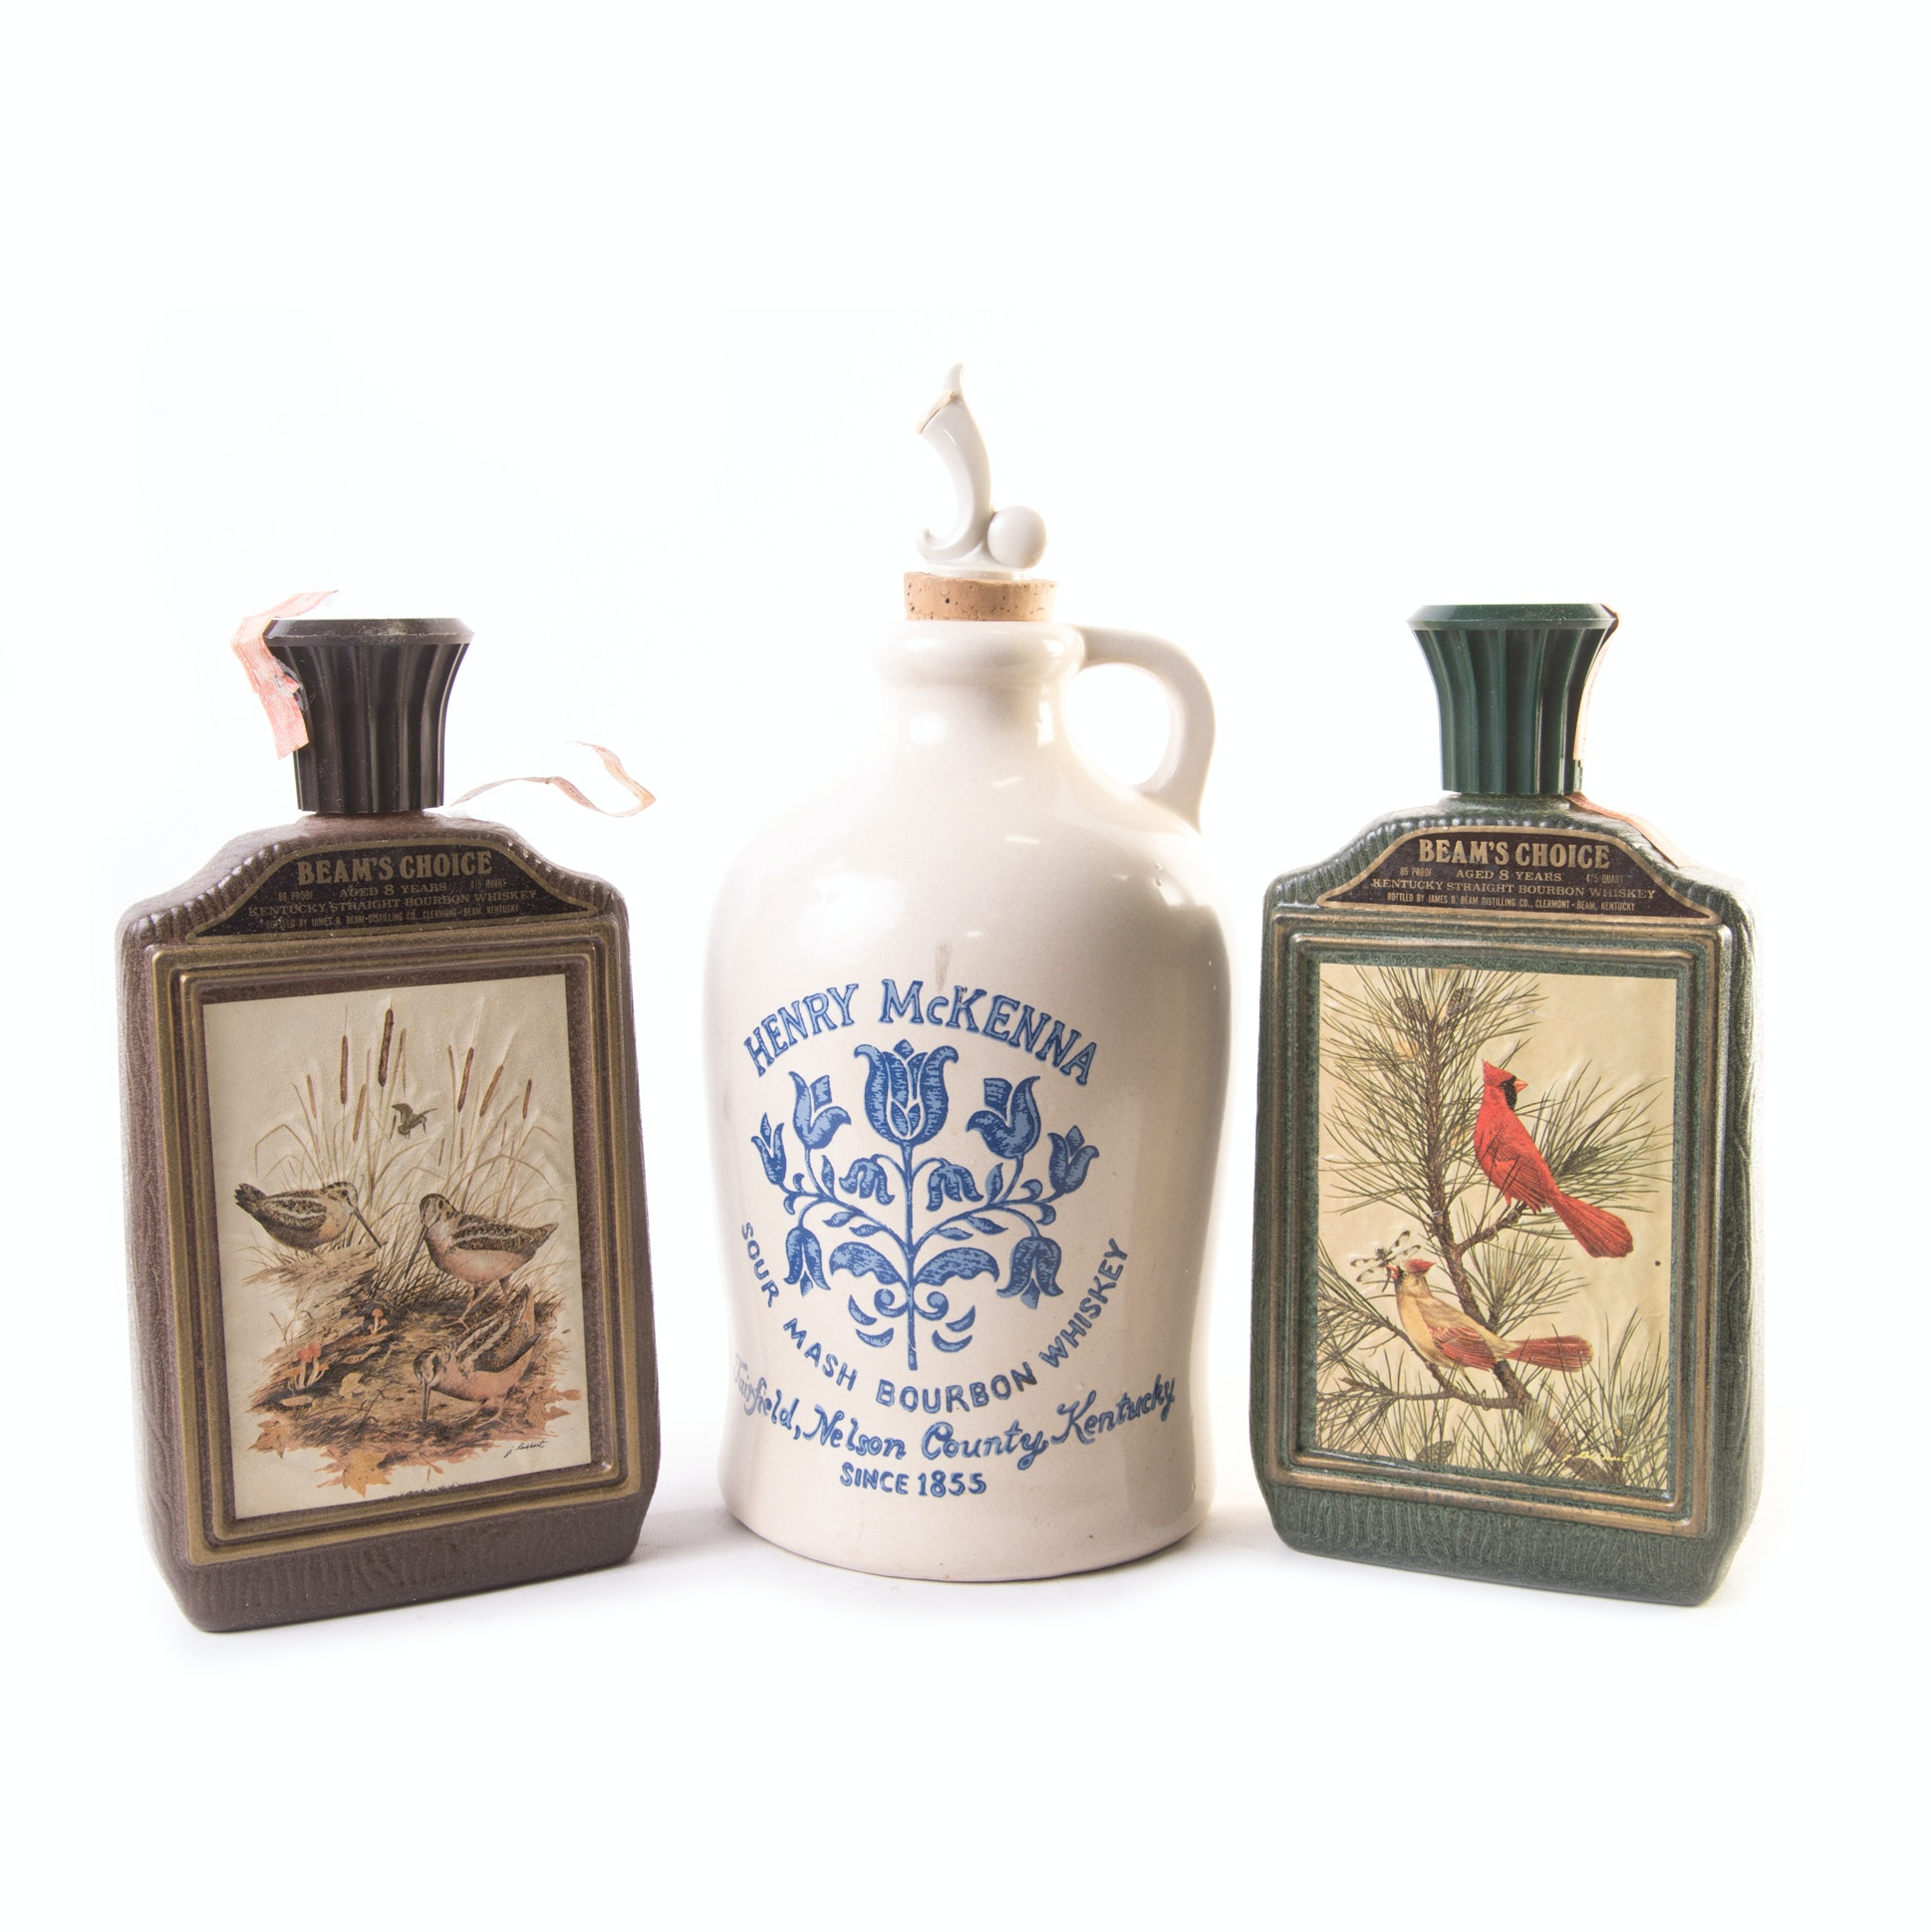 Henry McKenna Stoneware Jug and Beam's Choice Flasks